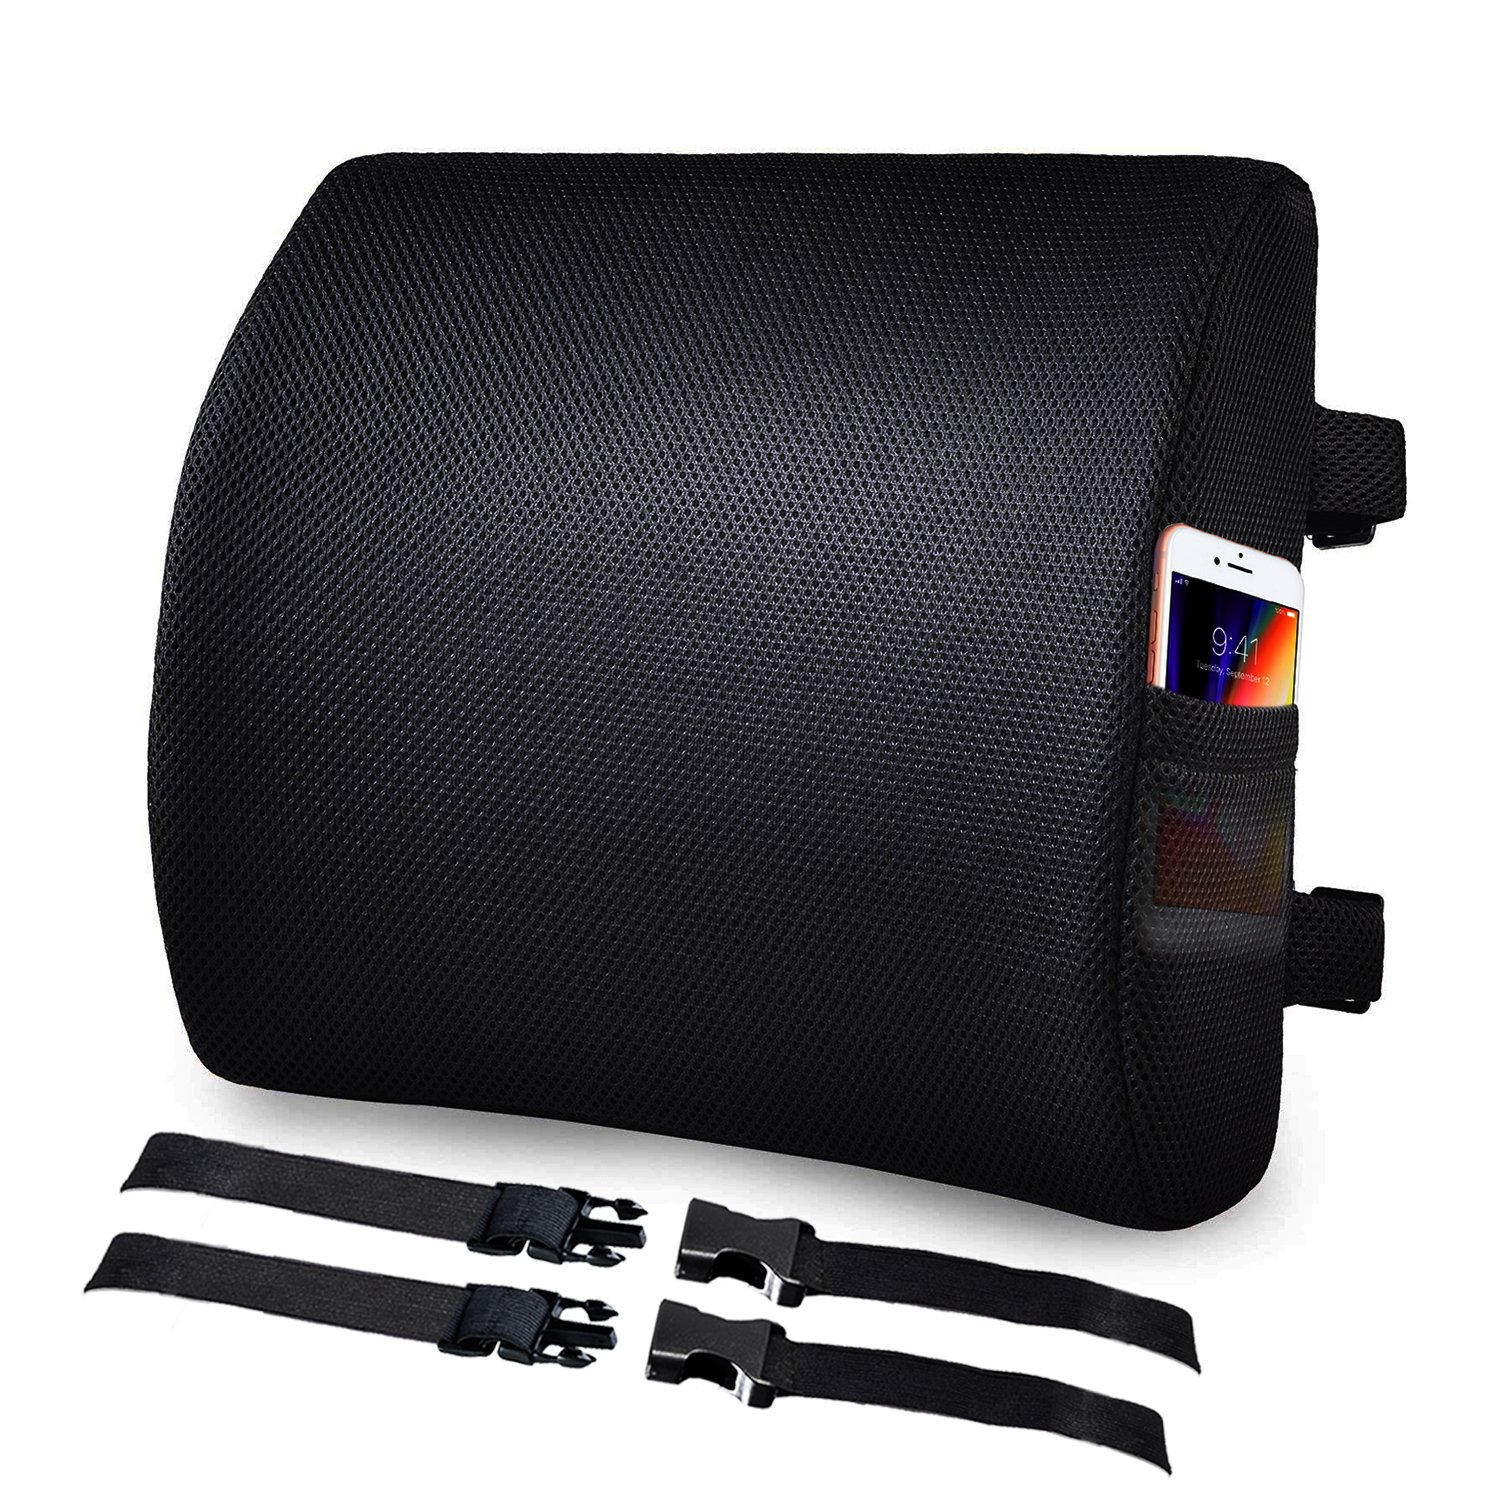 VECELO Memory Foam Lumbar Support Back Cushion Pillow, Ergonomically Designed to reduce Back pain Cushion for Office Chair/Car Seat, with Dual Adjustable Straps